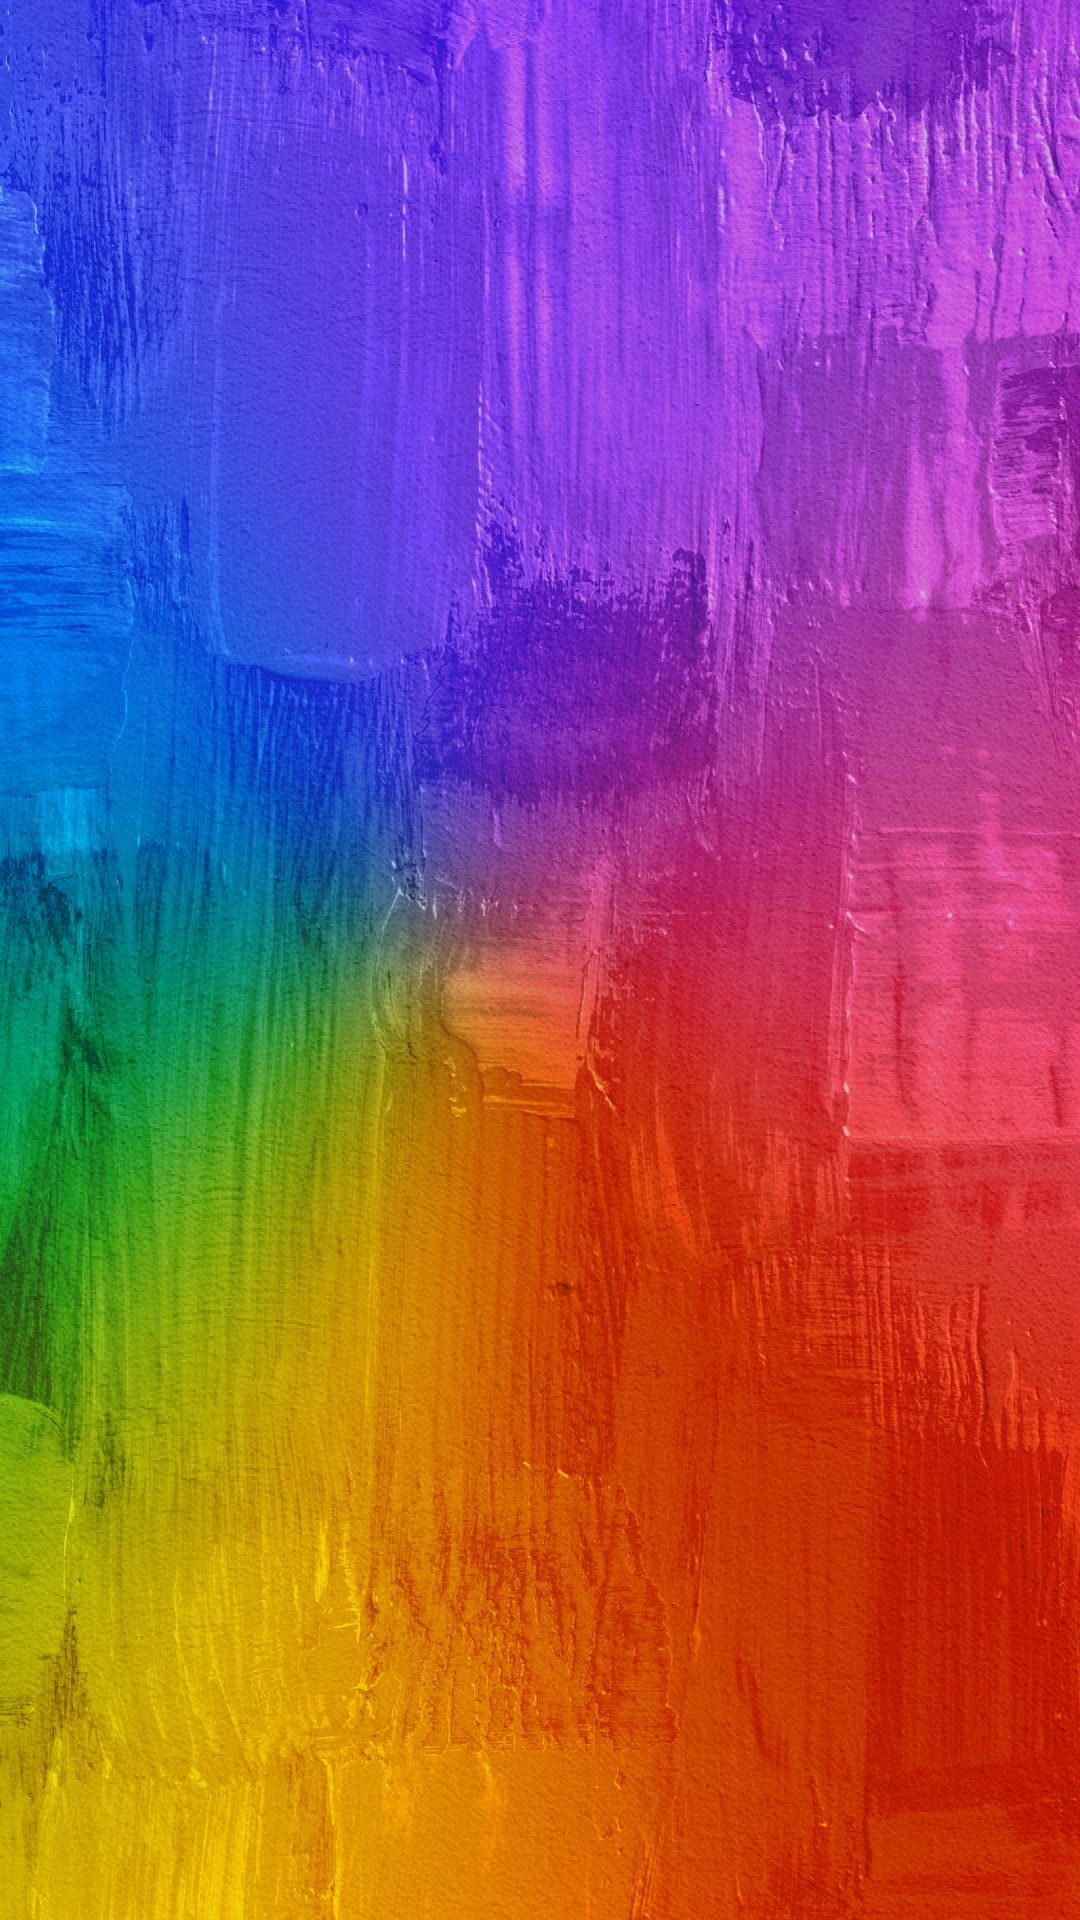 Painting Rainbow Iphone6s Wallpapers Iphone Wallpaper Rainbow Wallpaper Backgrounds Rainbow Wallpaper Iphone 6s Wallpaper